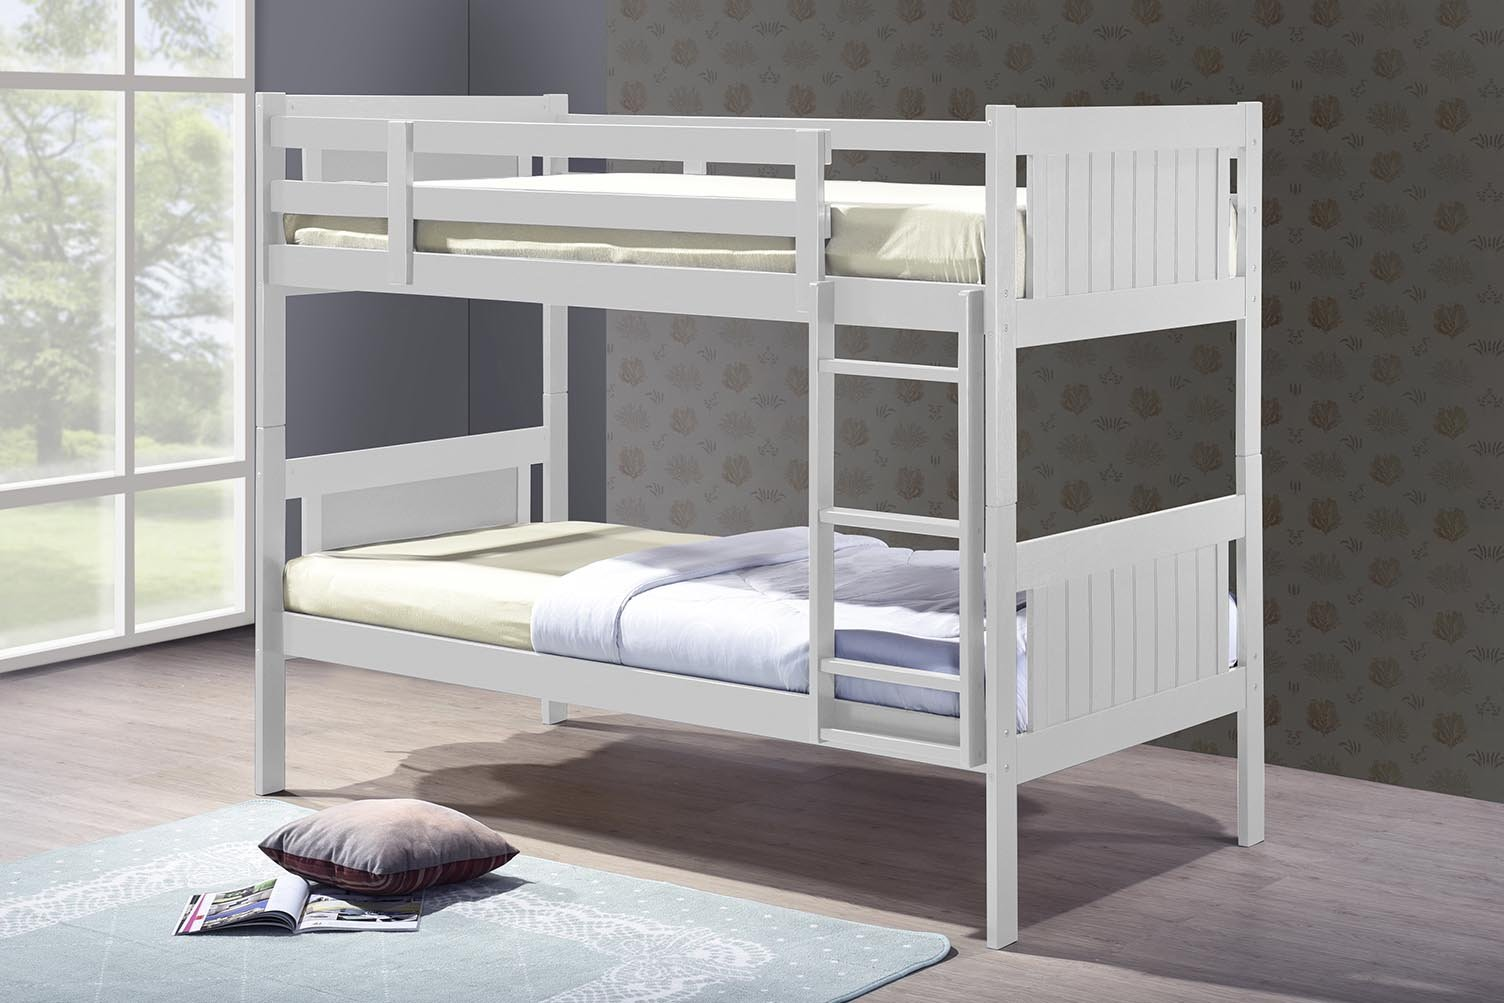 Humza Amani Glory White 3FT Single Wooden Bunk Bed (Storage Drawers Only (No Bunk & Bunk Beds: Amazon.co.uk